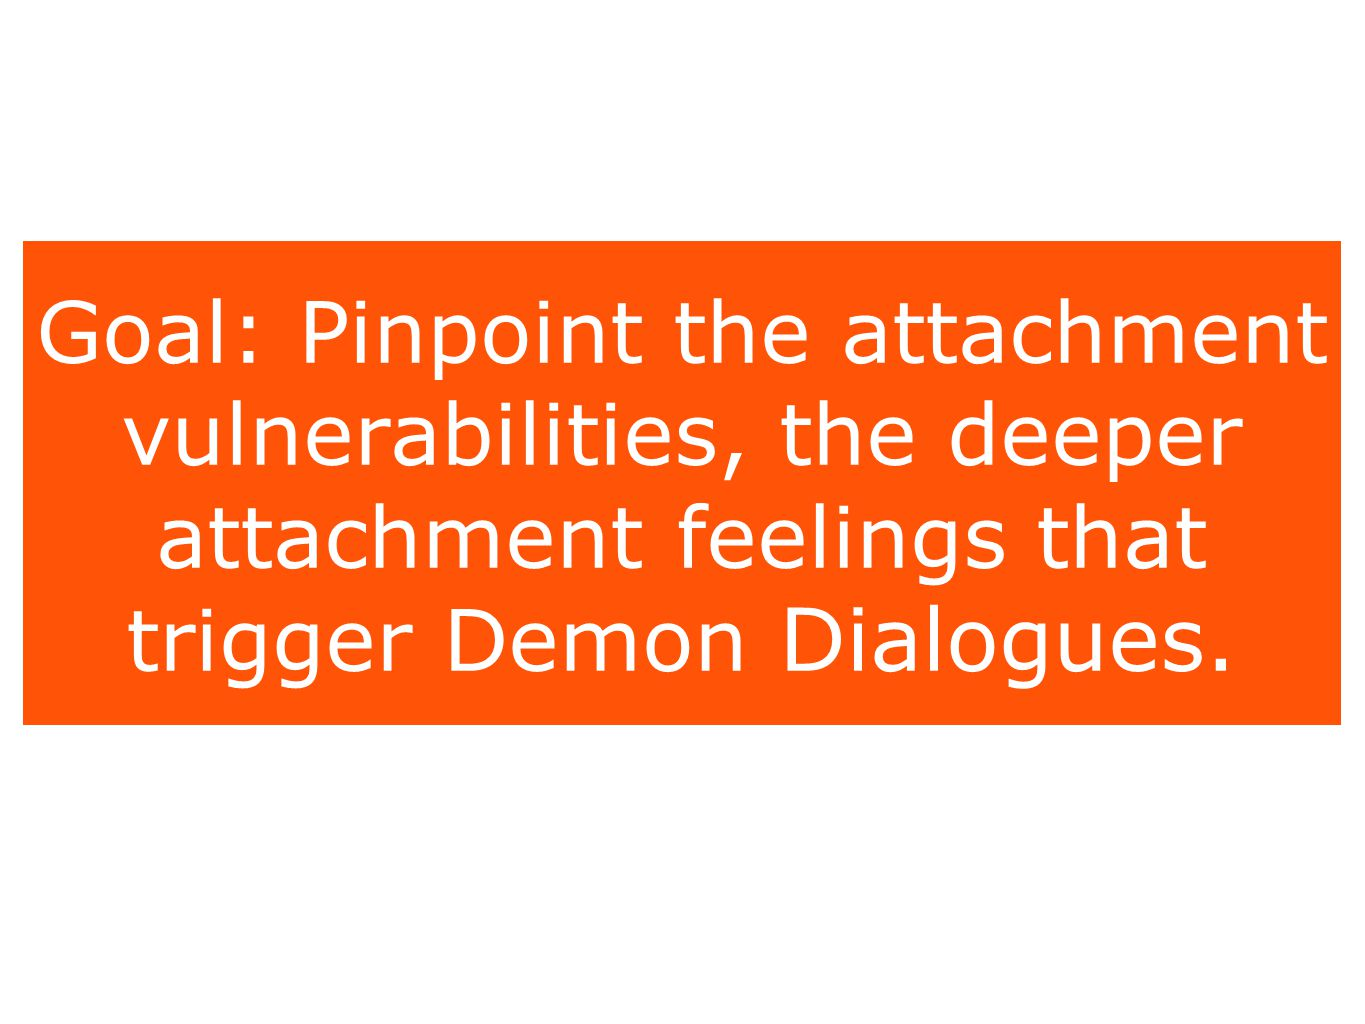 Goal: Pinpoint the attachment vulnerabilities, the deeper attachment feelings that trigger Demon Dialogues.